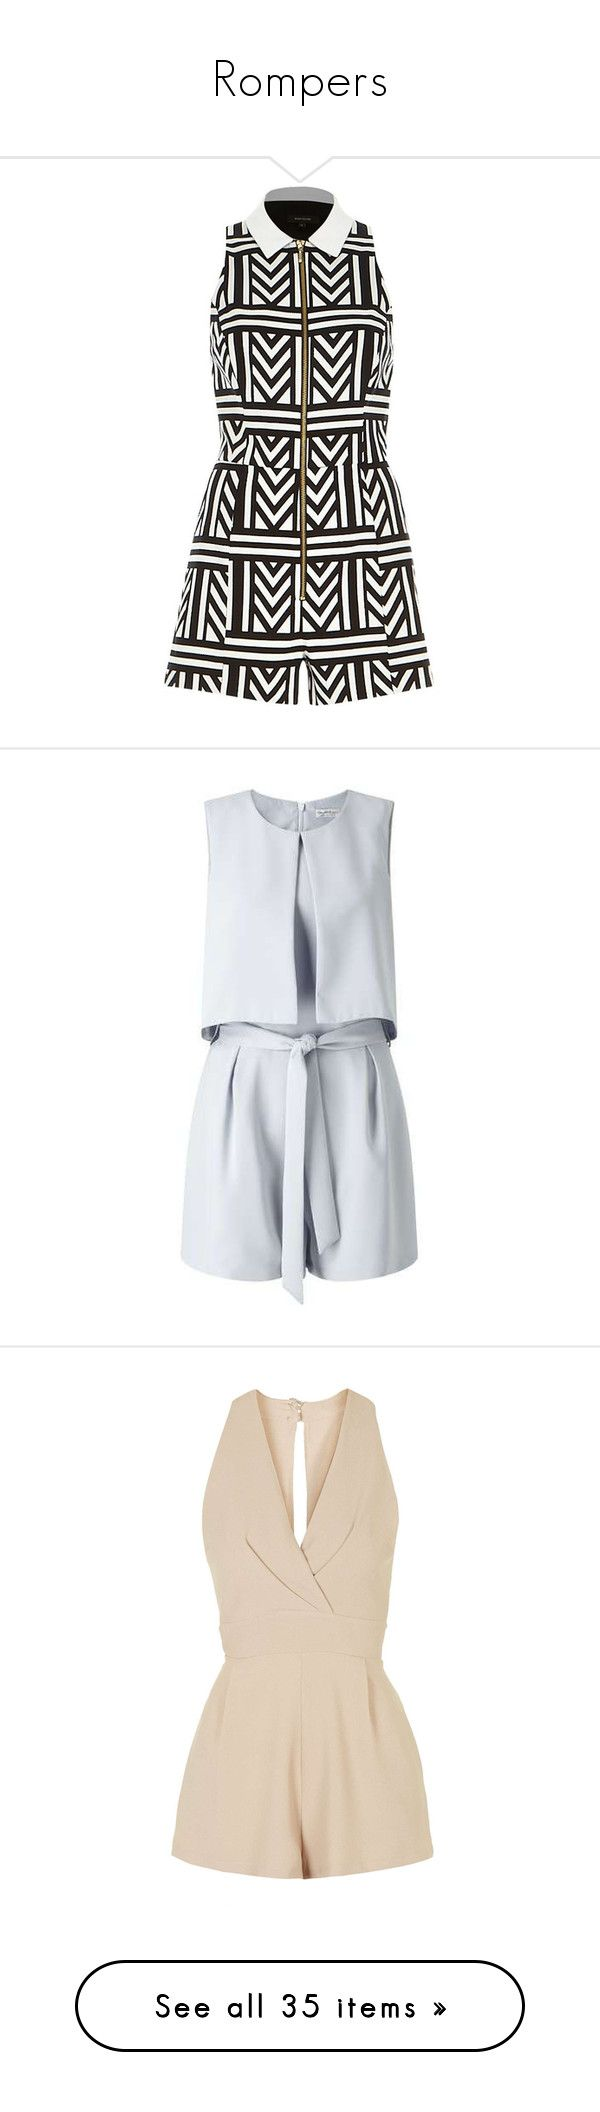 """""""Rompers"""" by cc-clarke ❤ liked on Polyvore featuring jumpsuits, rompers, dresses, playsuits, playsuit romper, romper jumpsuit, playsuit jumpsuit, jump suit, river island and shorts"""